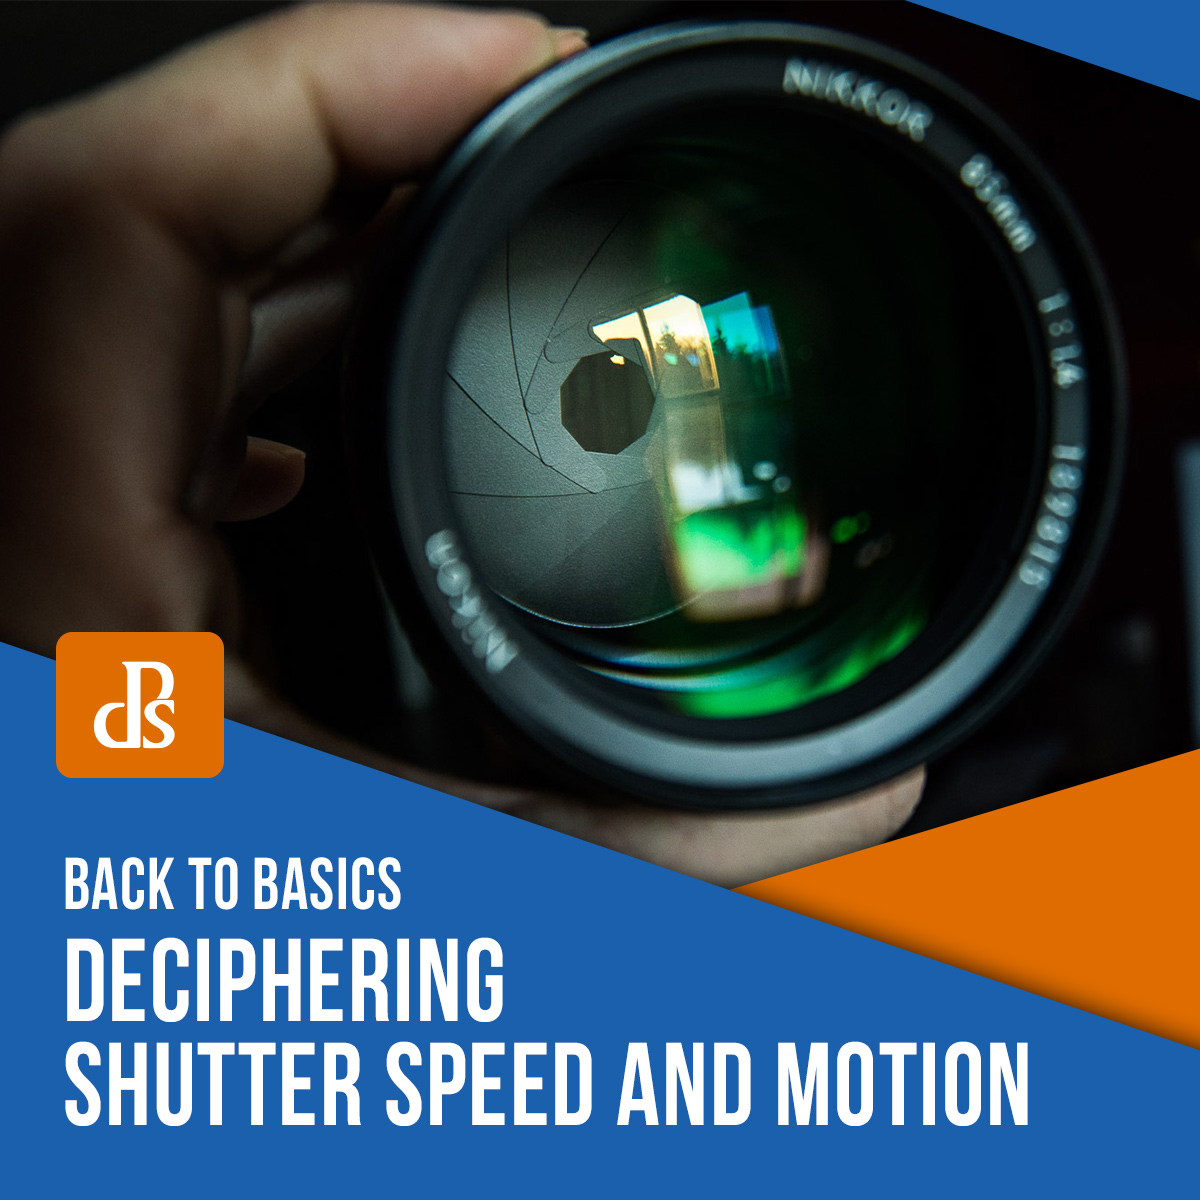 Back to Basics: Deciphering Shutter Speed and Motion